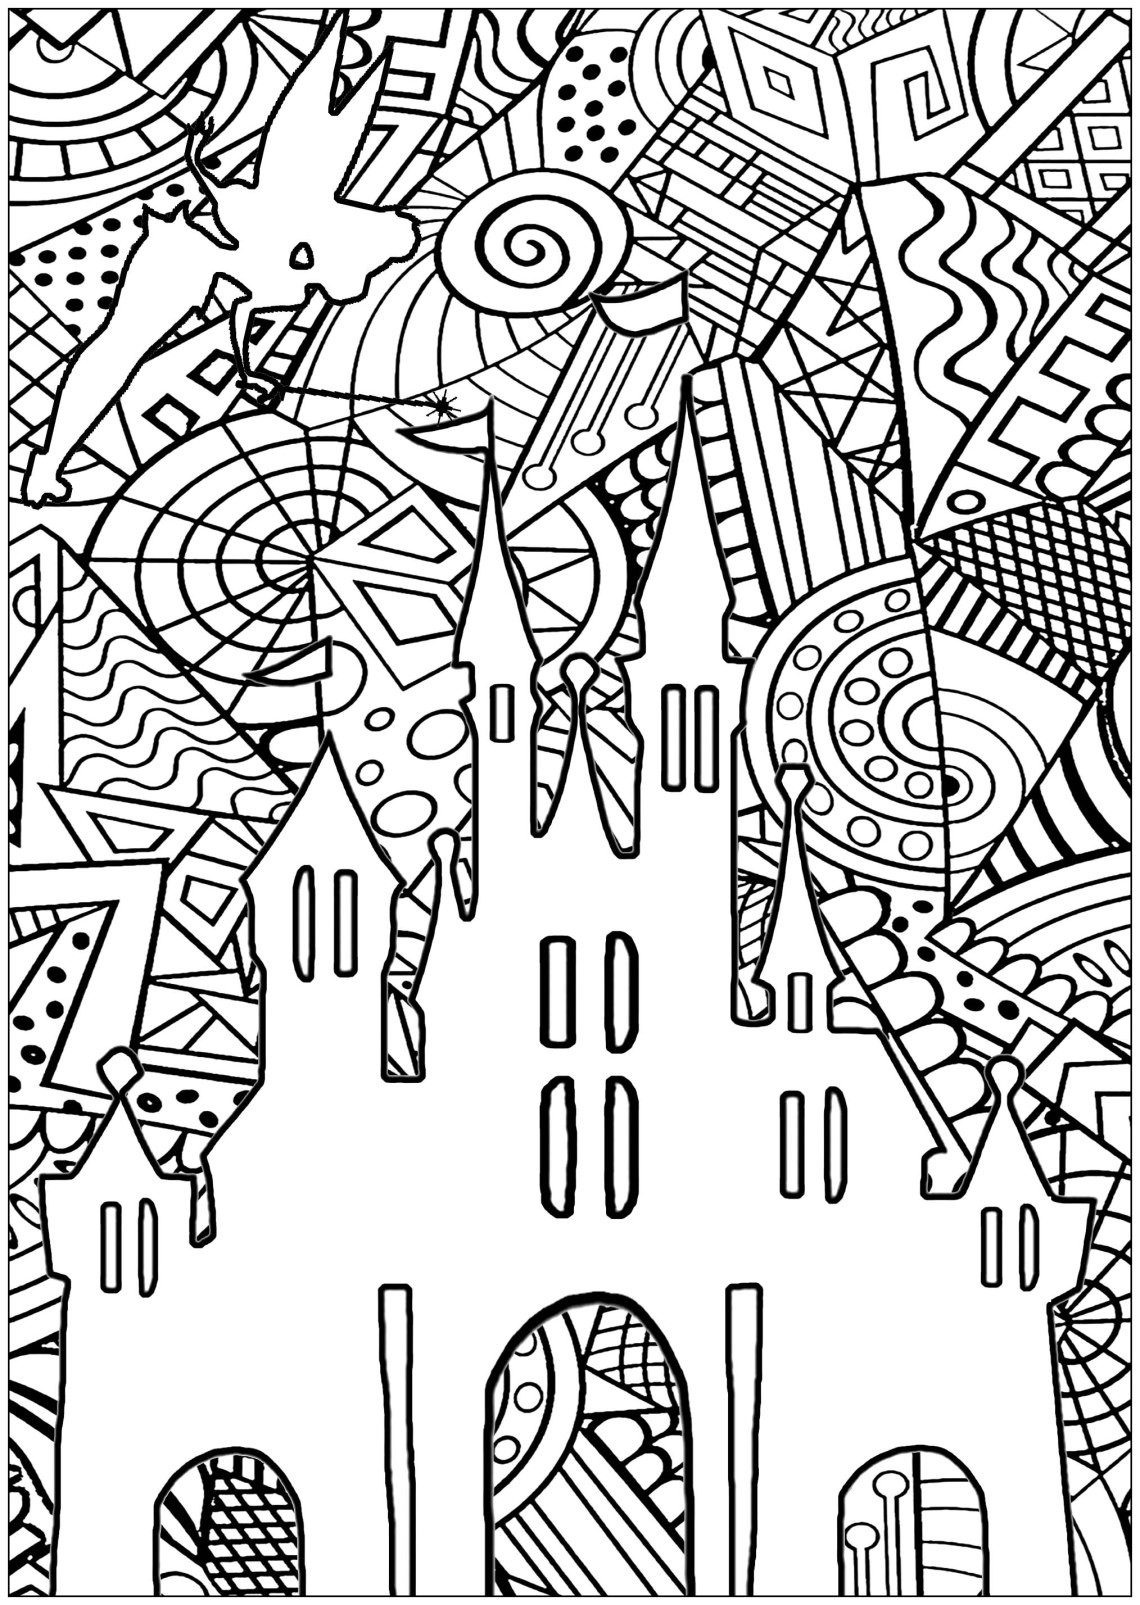 Disney castle - Return to childhood Adult Coloring Pages   colouring pages for adults disney